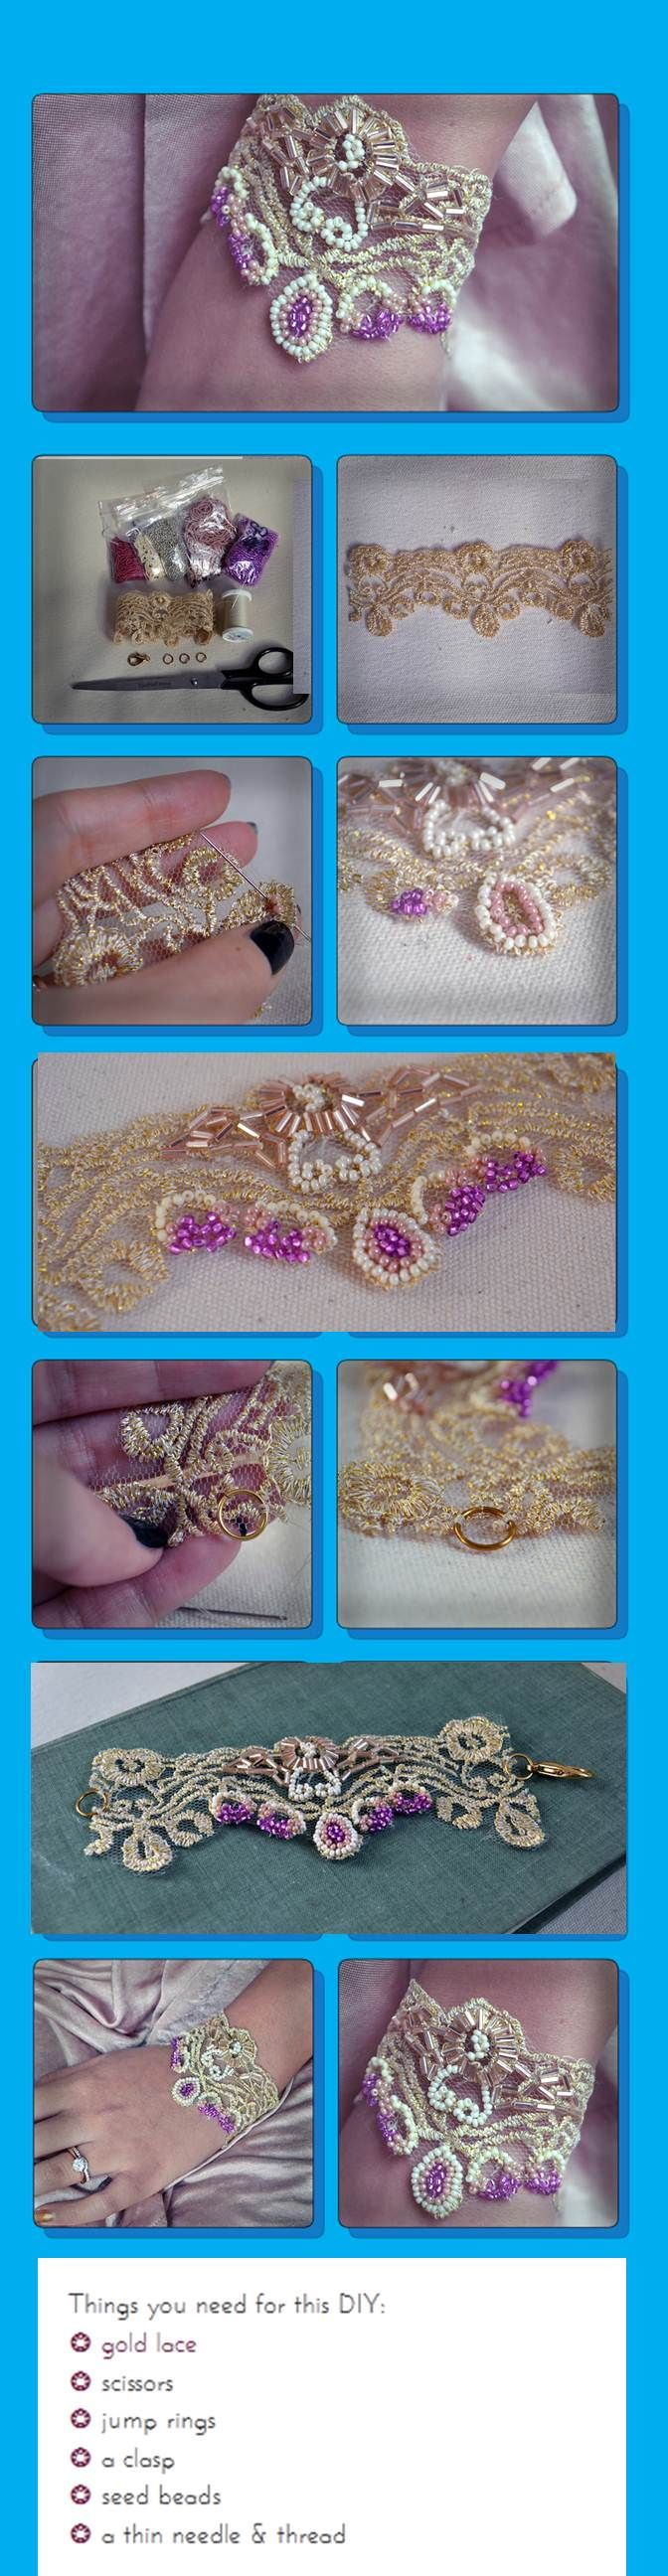 Shine  Trim DIY: Beaded Gold Lace Bracelet  Things you need for this DIY:  ❂ gold lace  ❂ scissors  ❂ jump rings  ❂ a clasp  ❂ seed beads  ❂ a thin needle  thread    Total time:  2 hours.  Very Impressive!  Great Blog